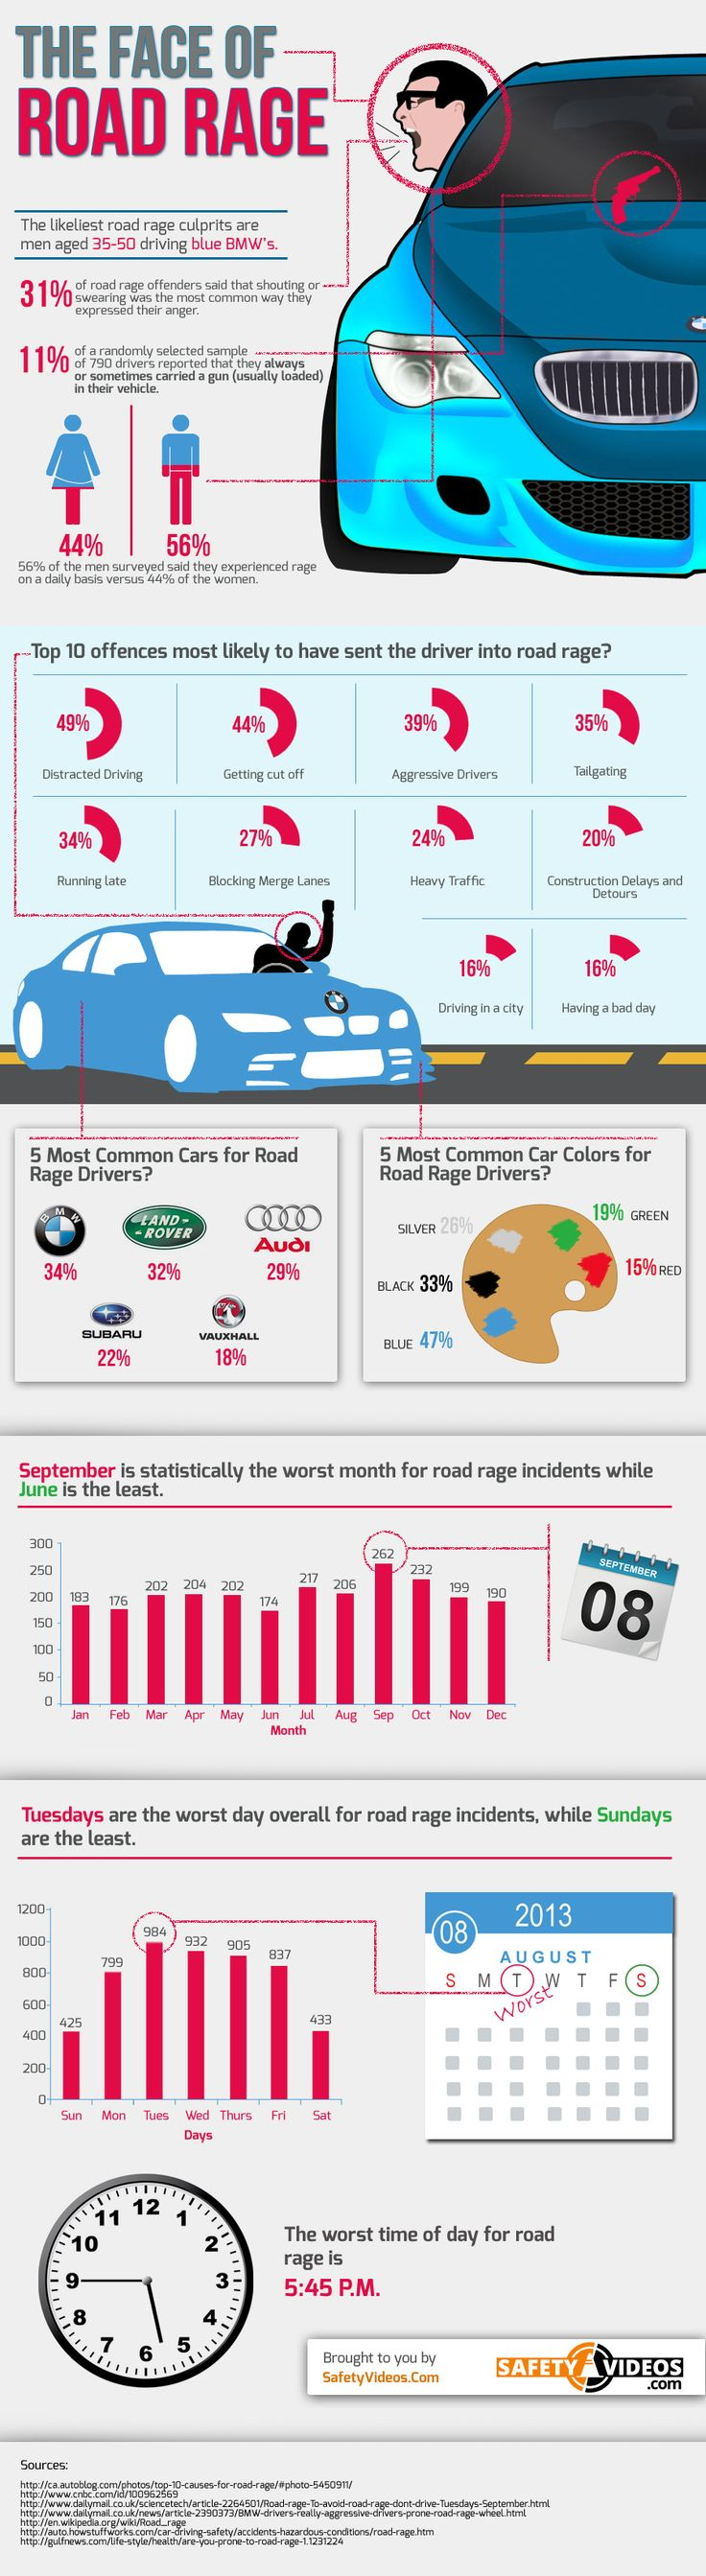 Men in BMWs? Interesting. This pin breaks down the demographics who participate in road rage